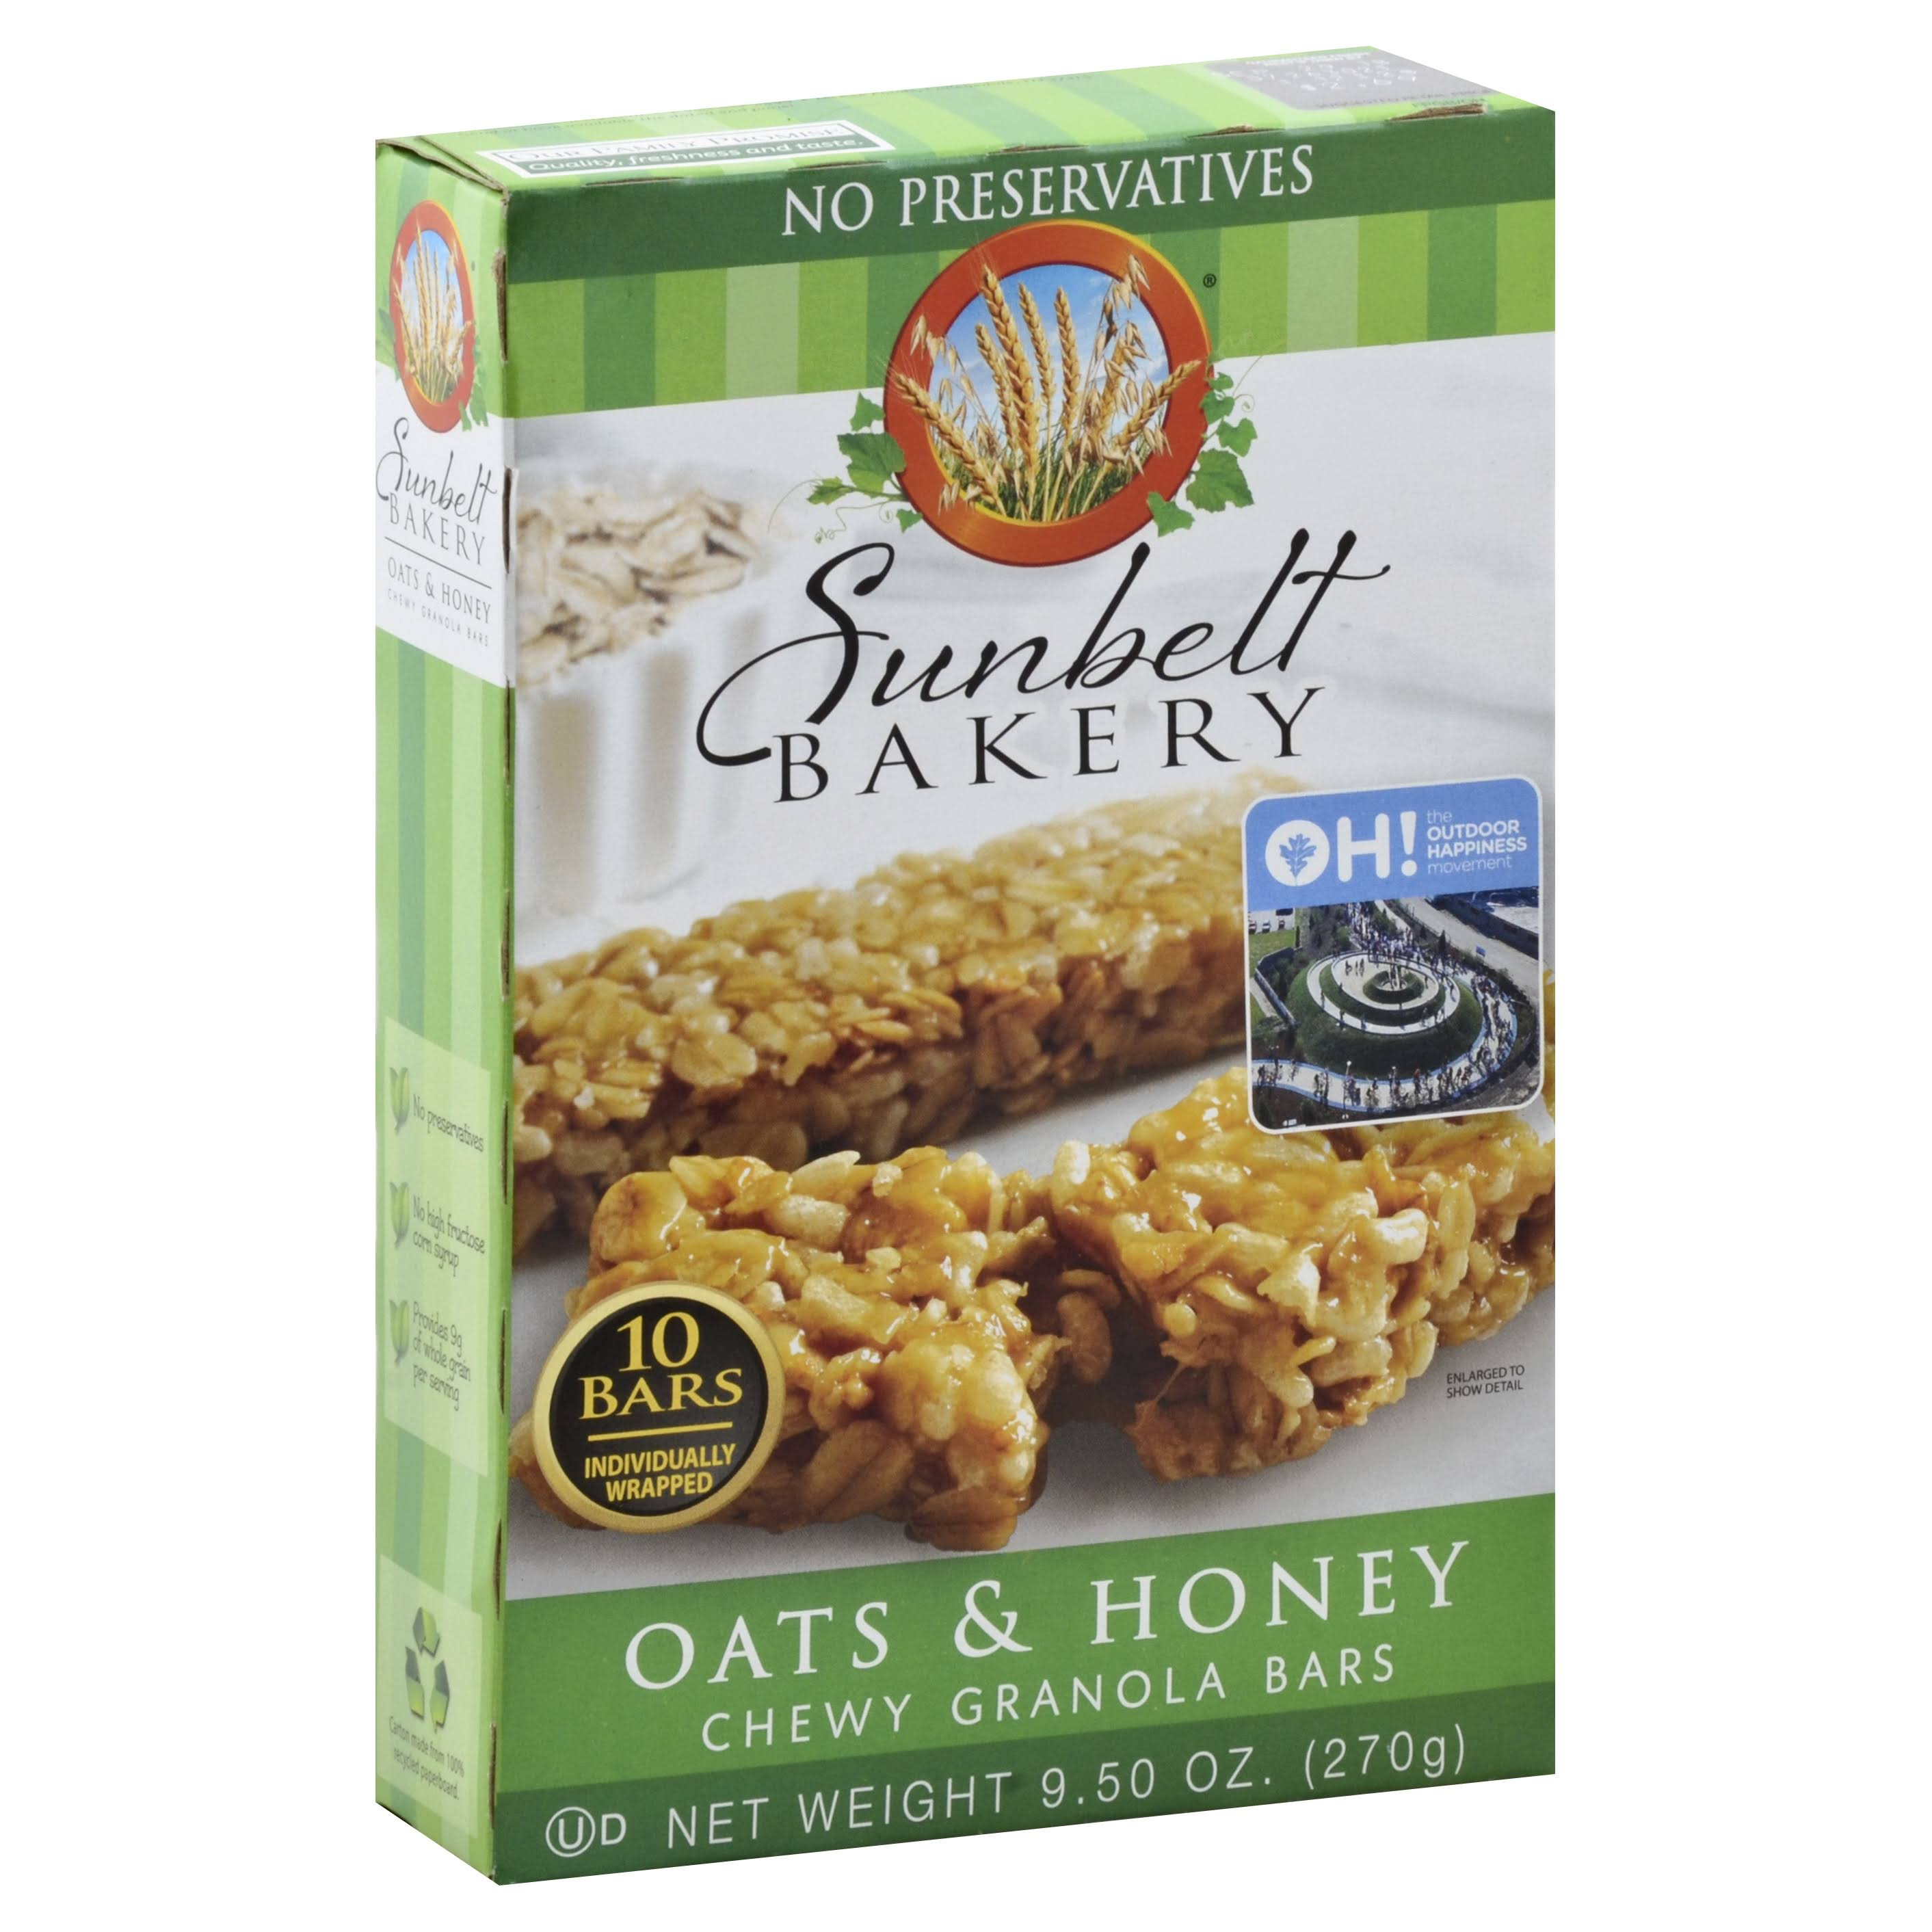 Sunbelt Bakery Chewy Granola Bars - Oats and Honey, 9.5oz, 10ct